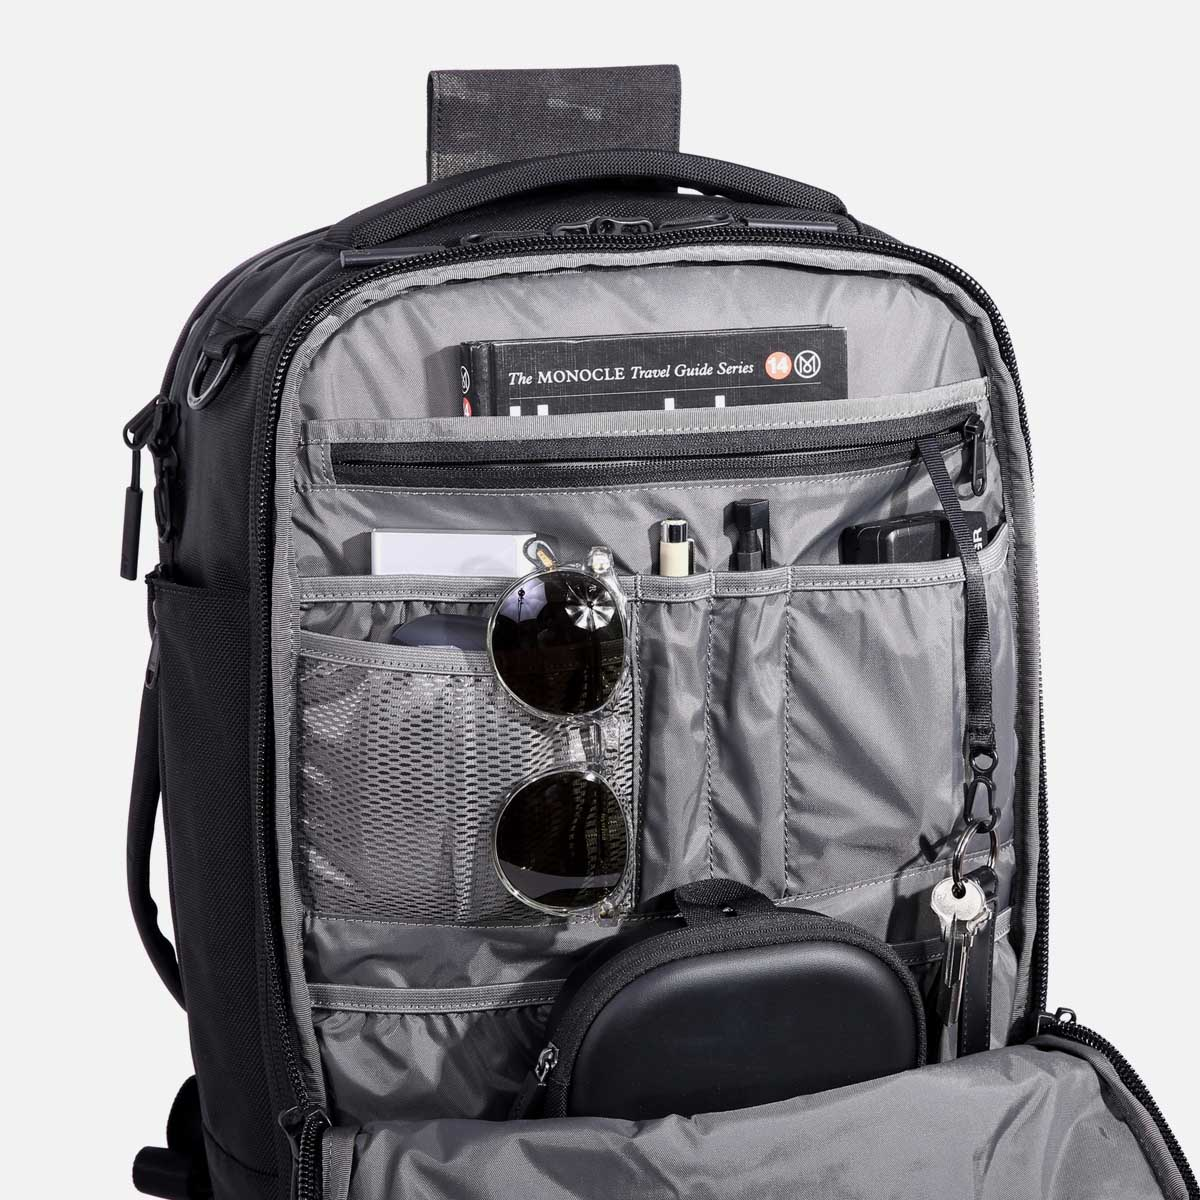 Multiple pockets keep you organized and prepared.